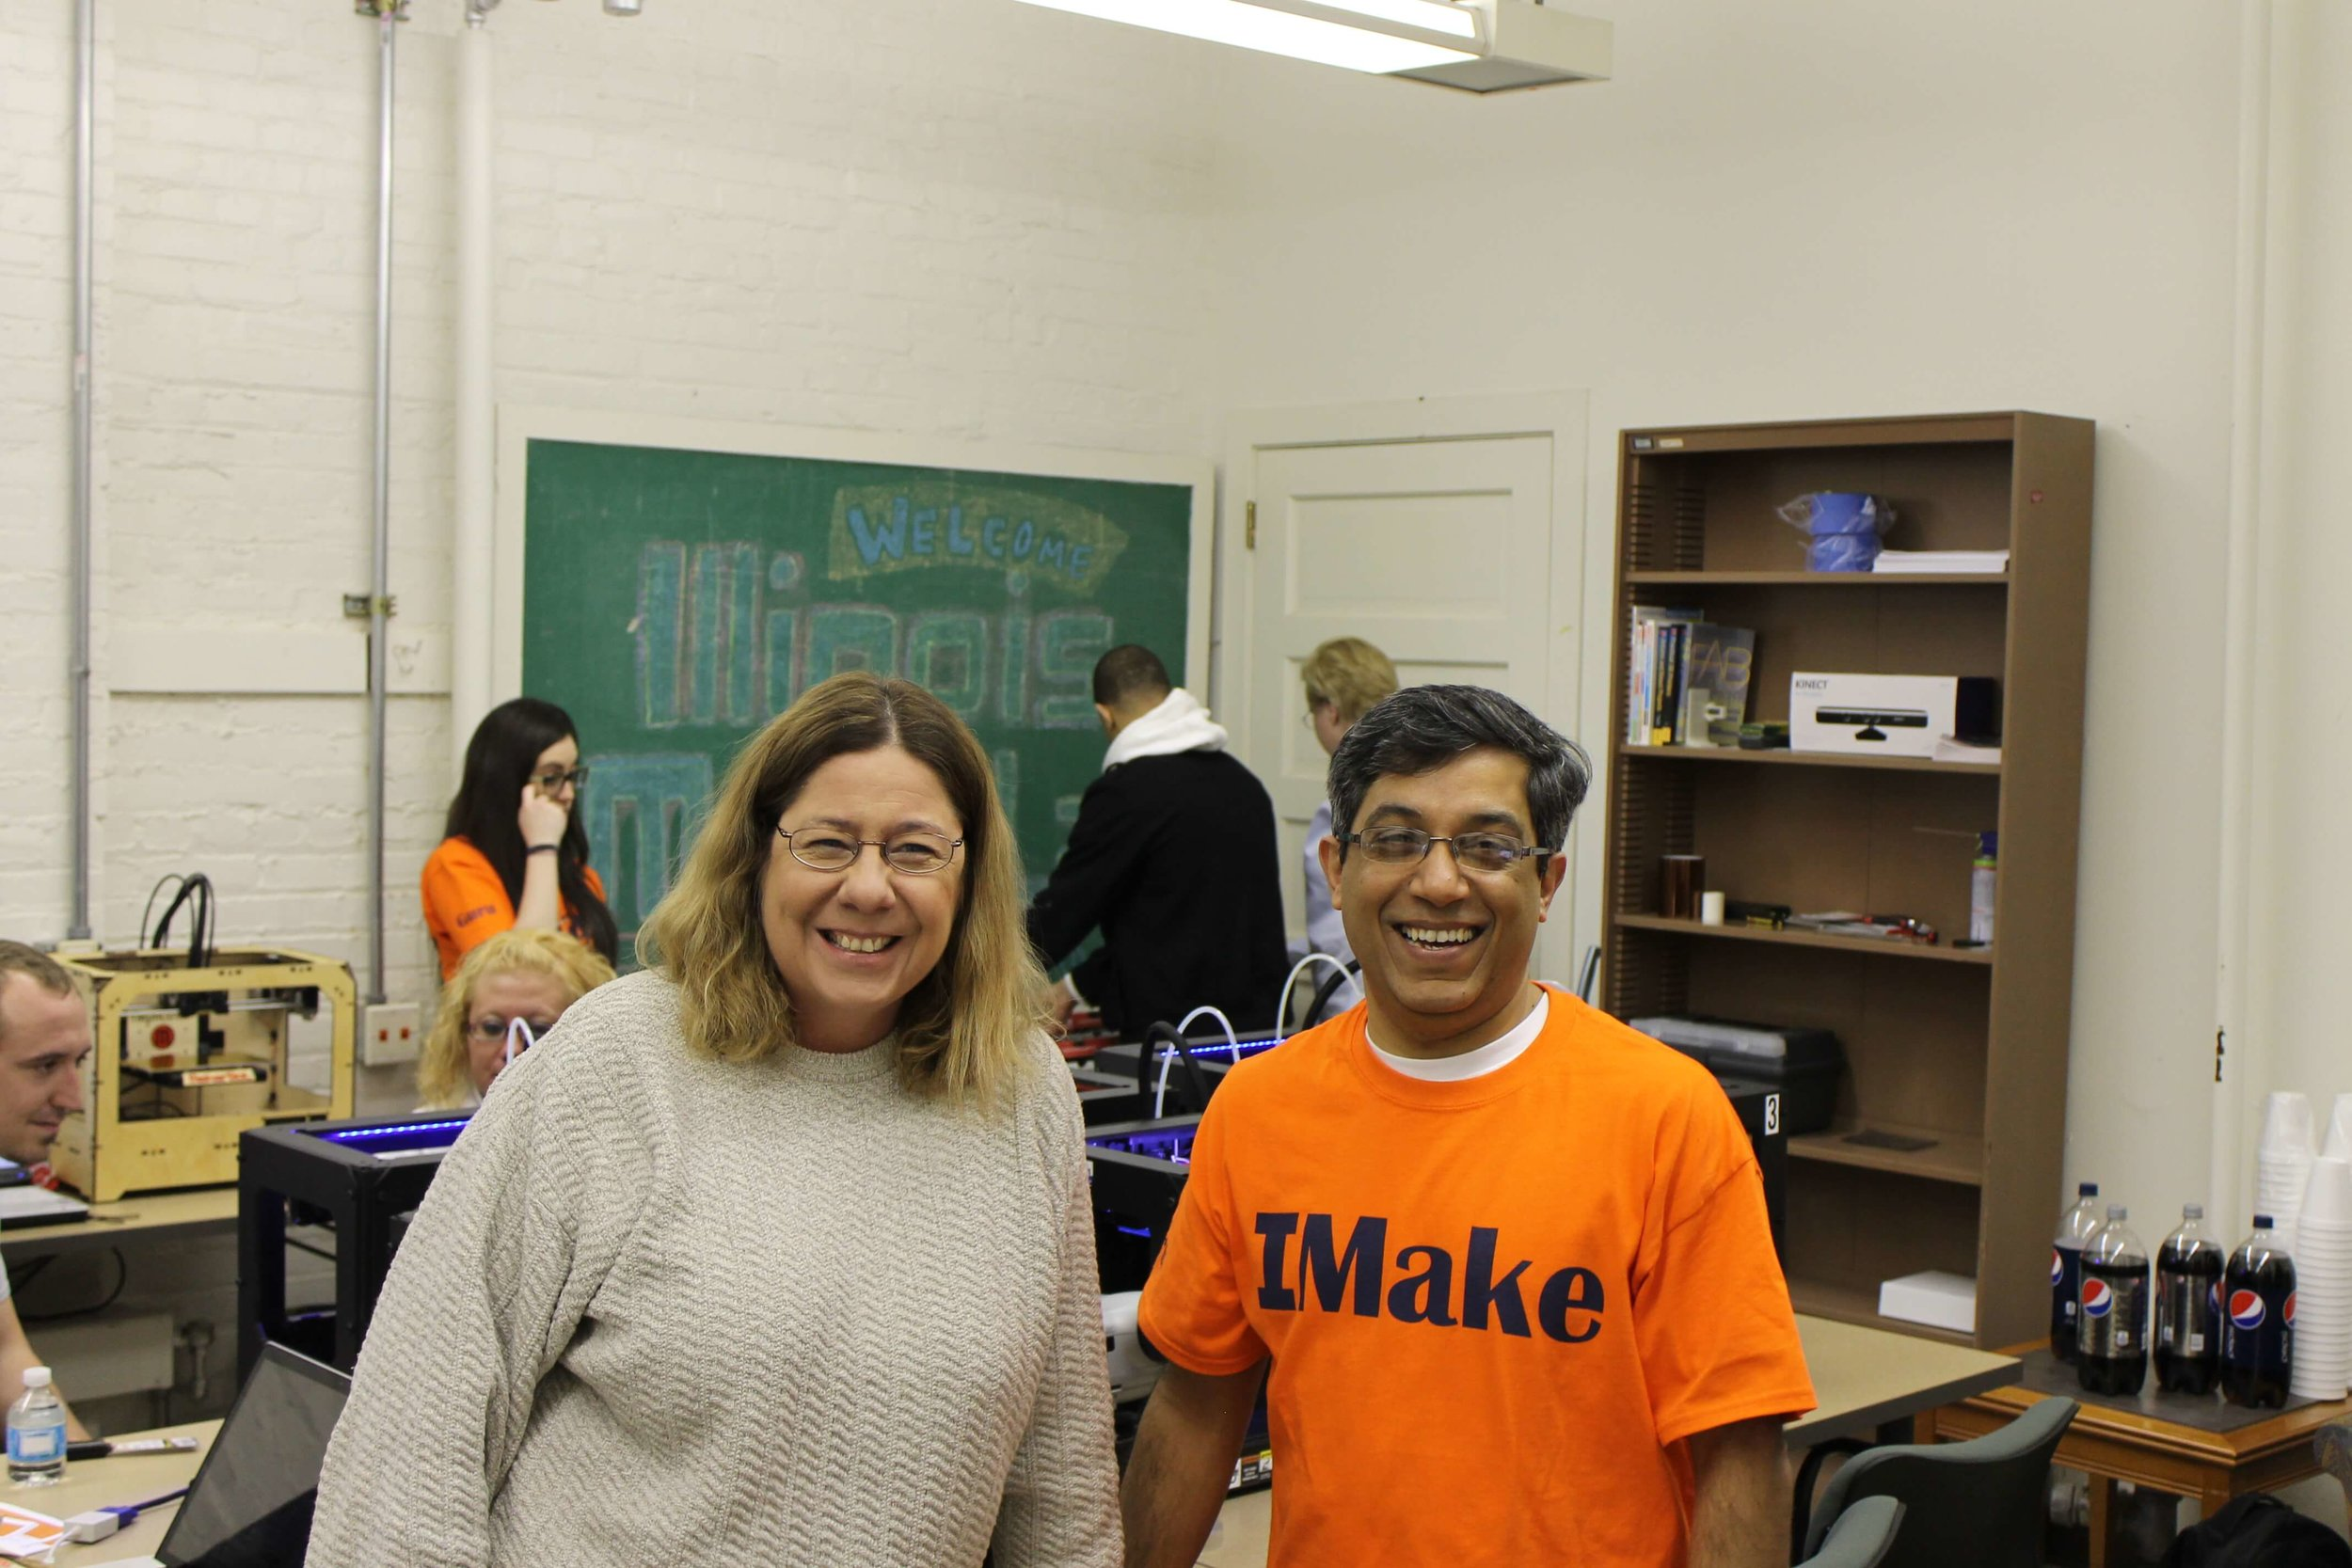 Becky Smith,Head, Business and Economics Library and Associate Professor , with Vishal Sachdev, Director, MakerLab. Becky showing her support for the Maker Movement